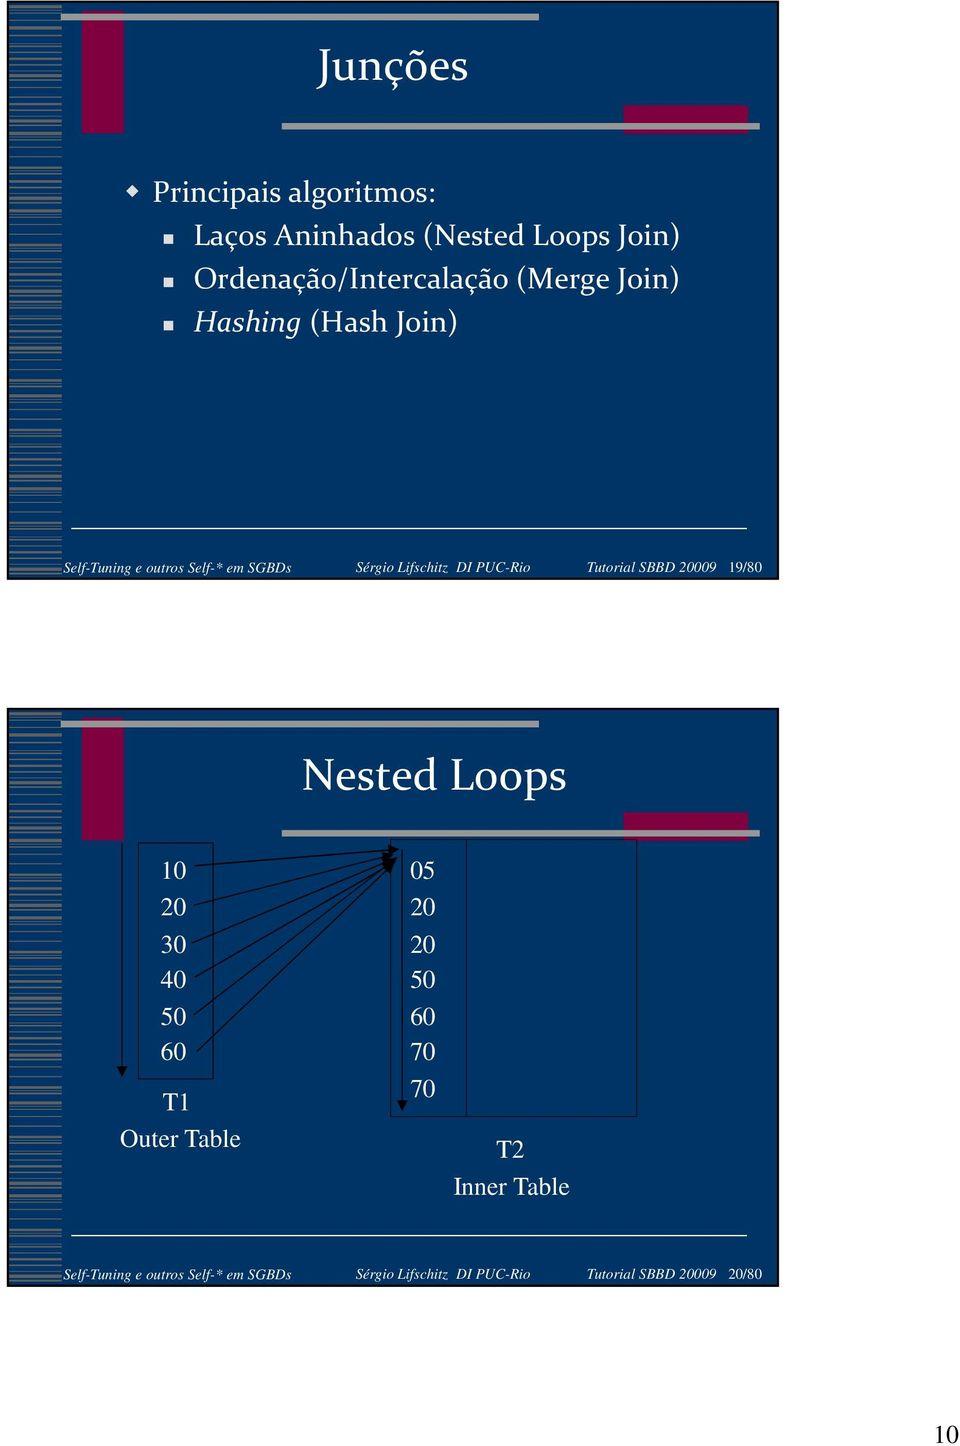 Tutorial SBBD 20009 19/80 Nested Loops 10 20 30 40 50 60 T1 Outer Table 05 20 20 50 60 70 70 T2